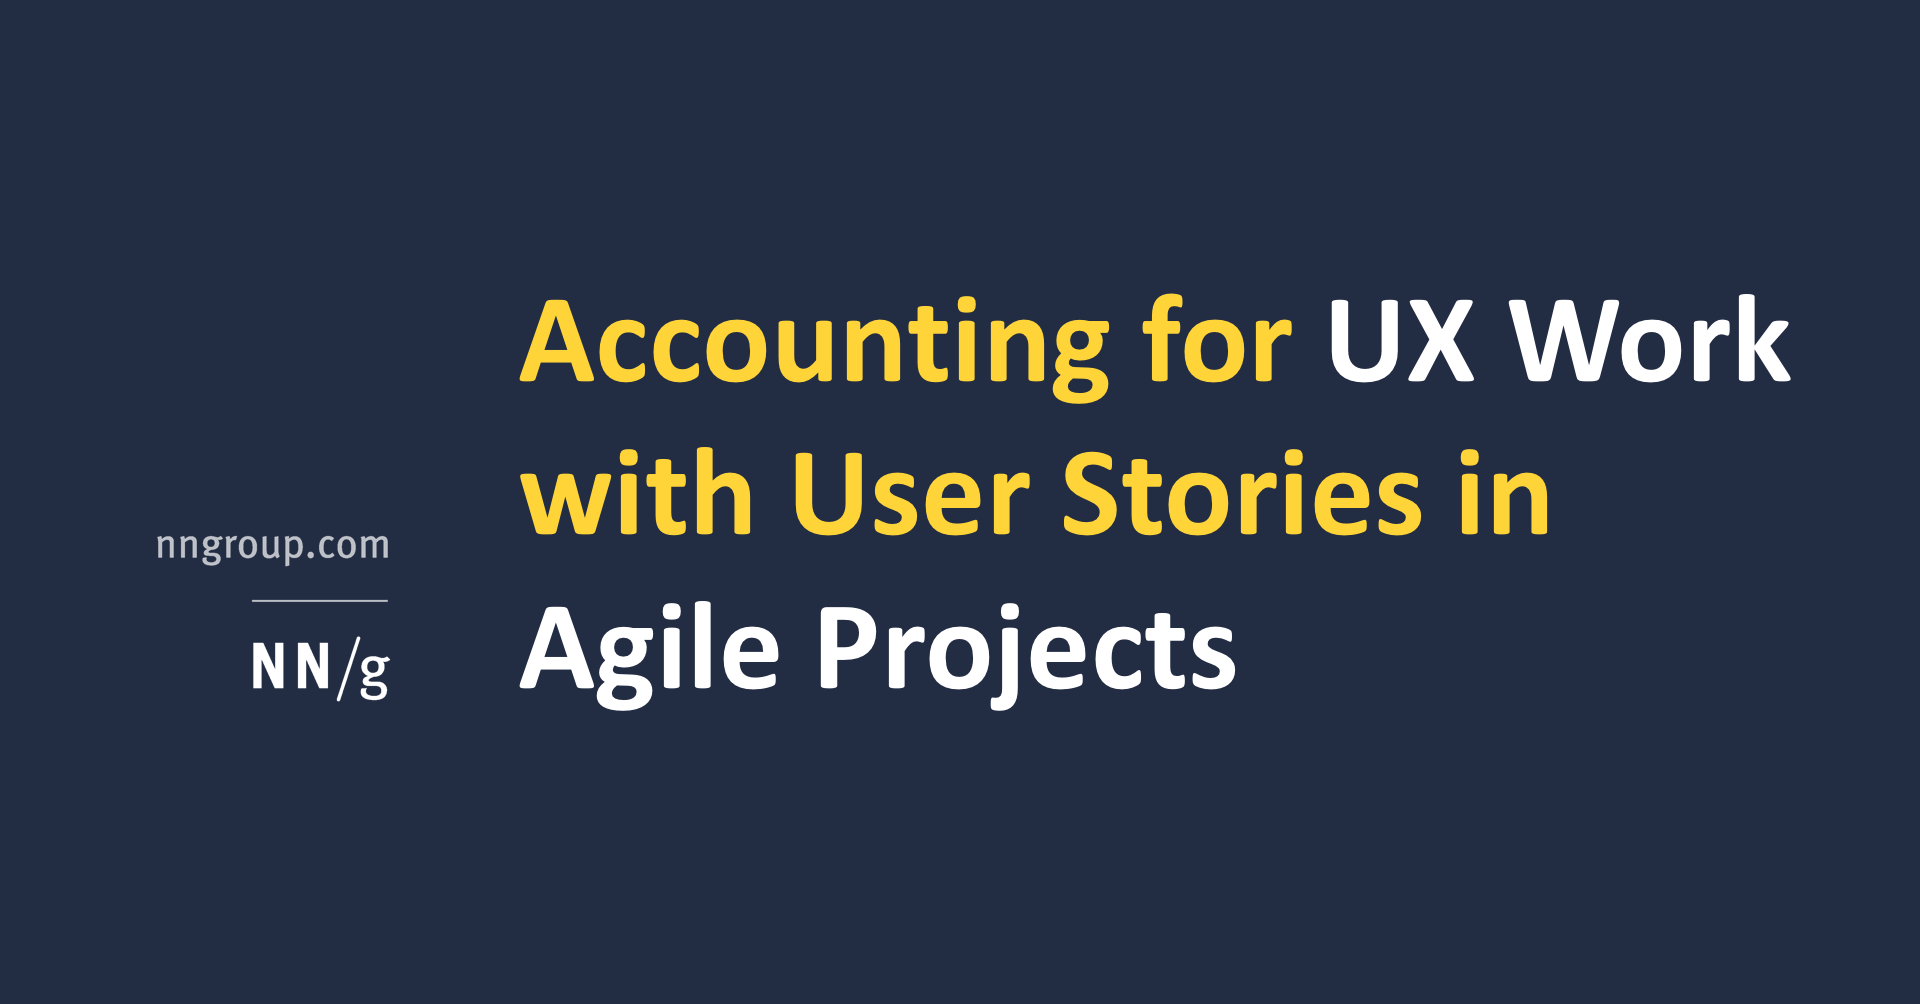 Accounting for UX Work with User Stories in Agile Projects